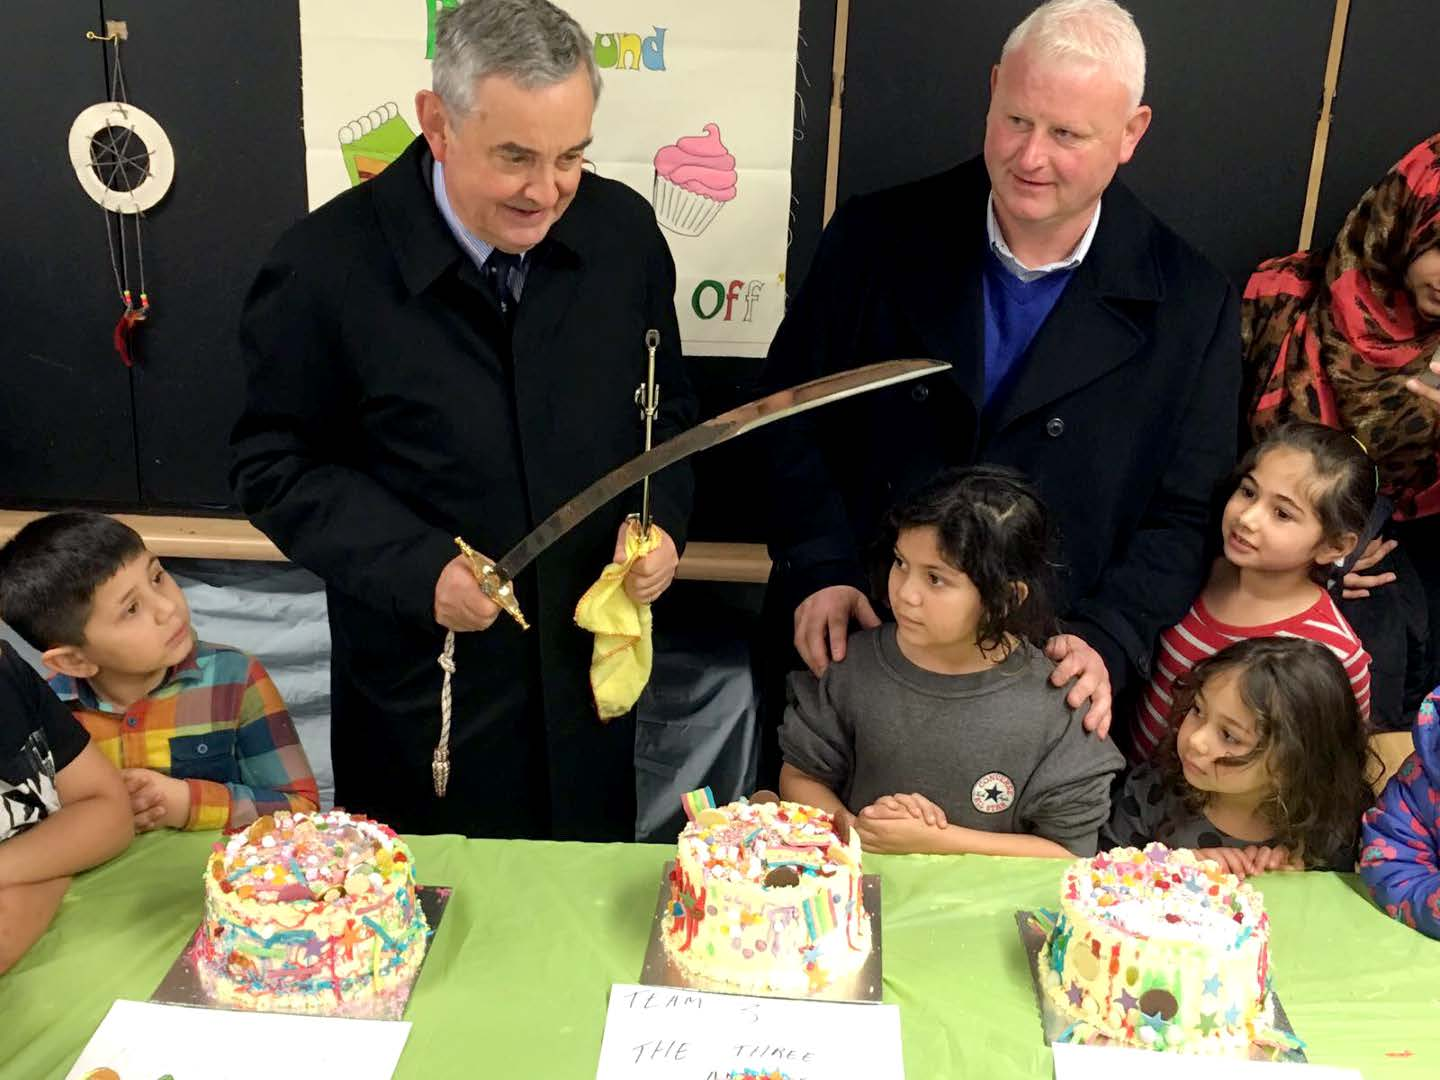 Lord Lieutenant with ceremonial sword at playground.Patrick meleady and four children in the photo with three cakes in front of them.